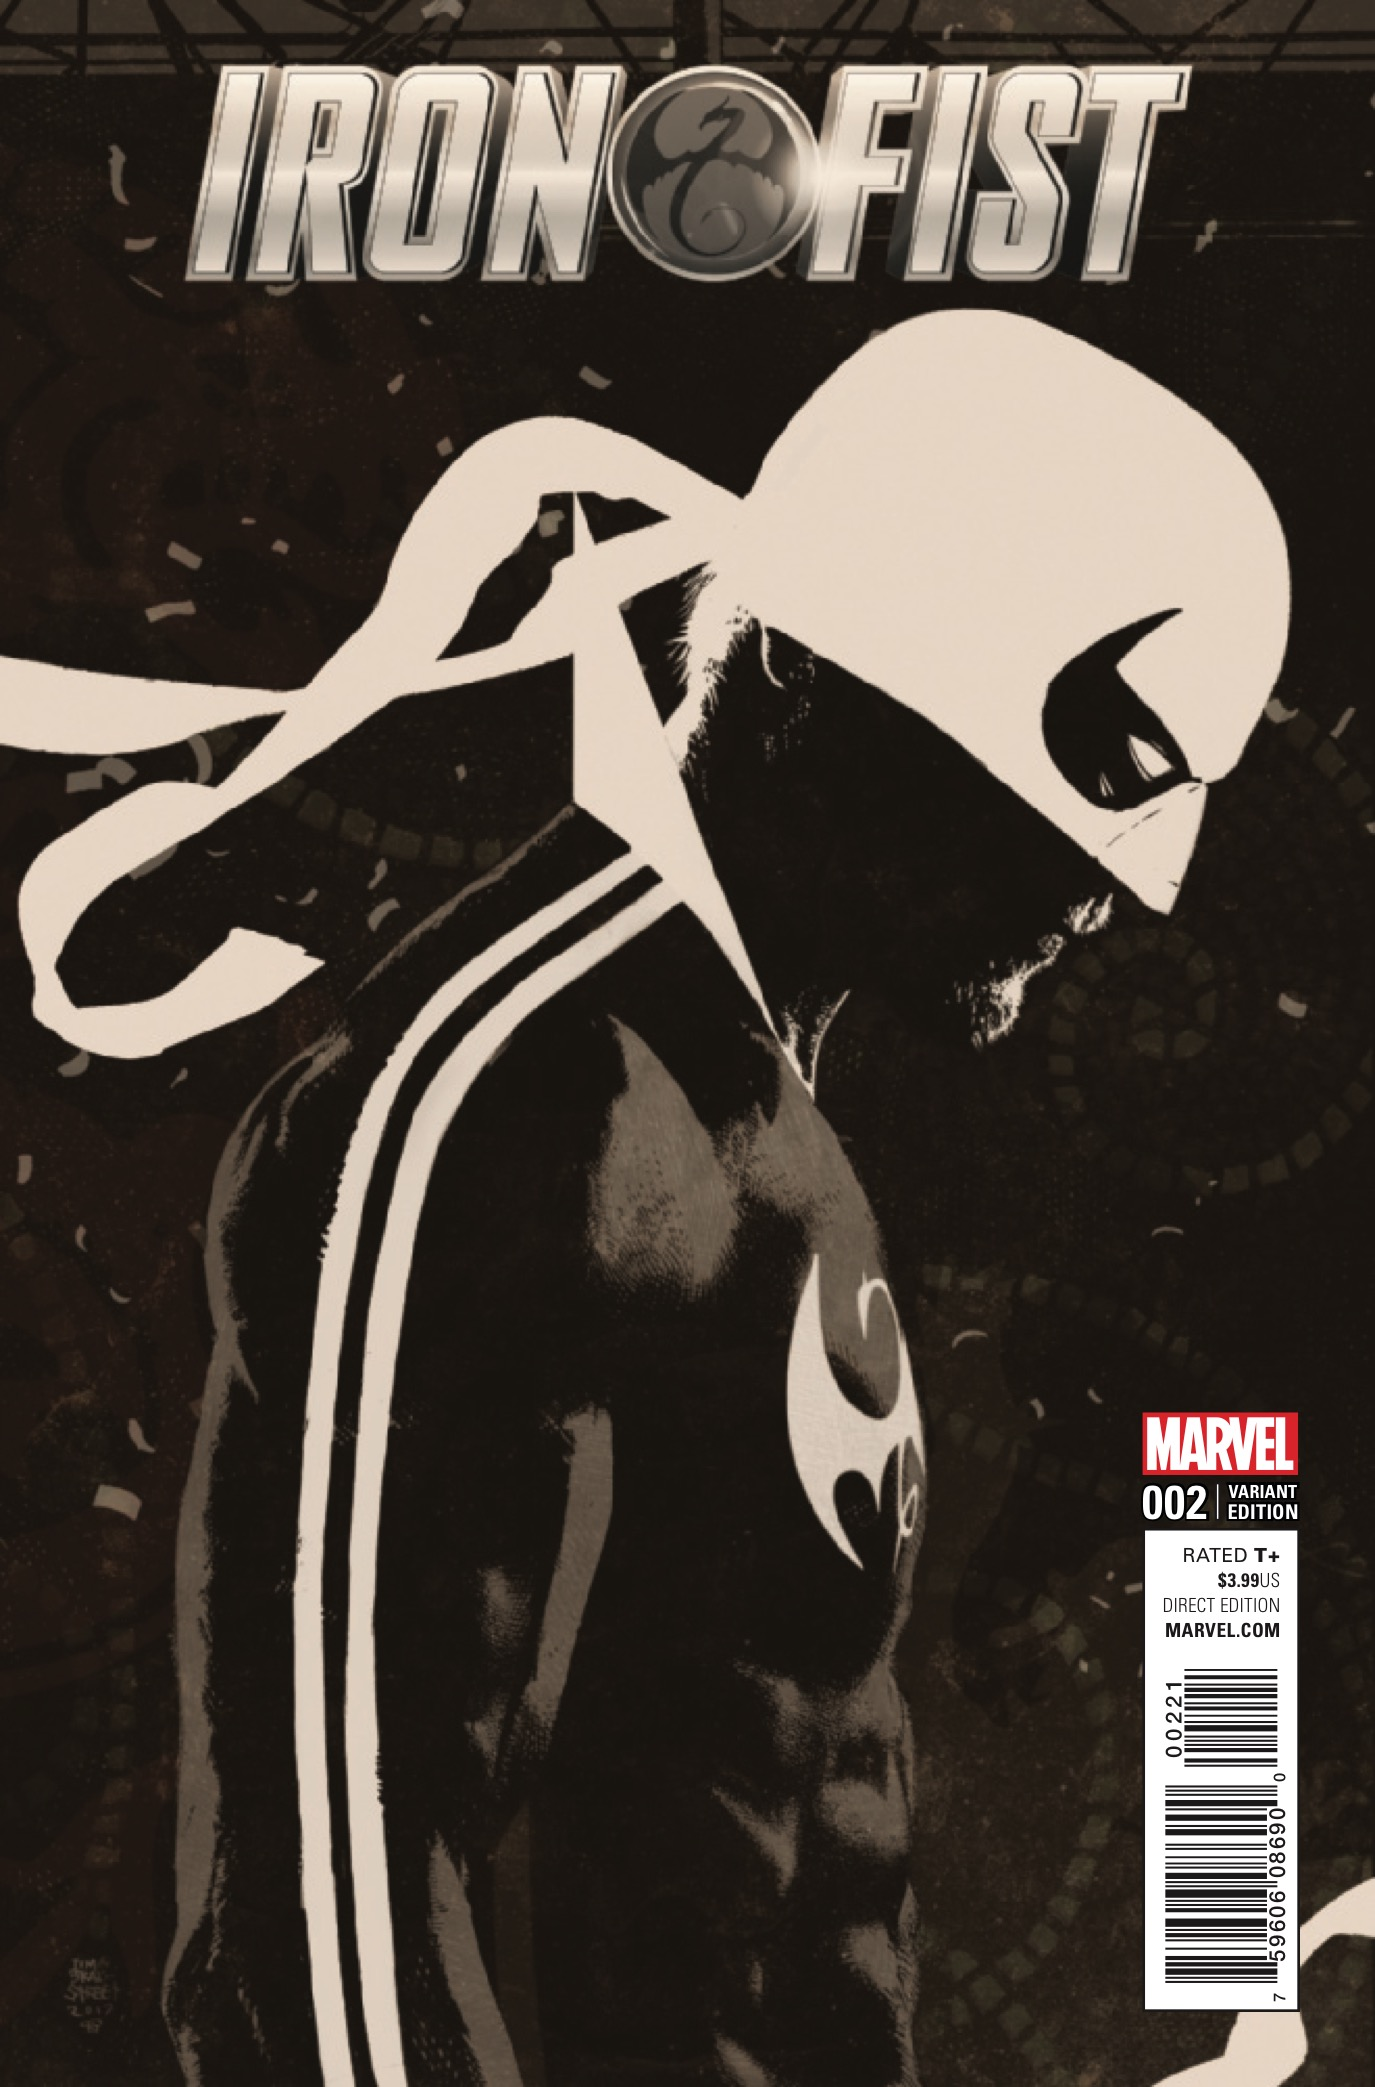 Iron Fist #2 Review